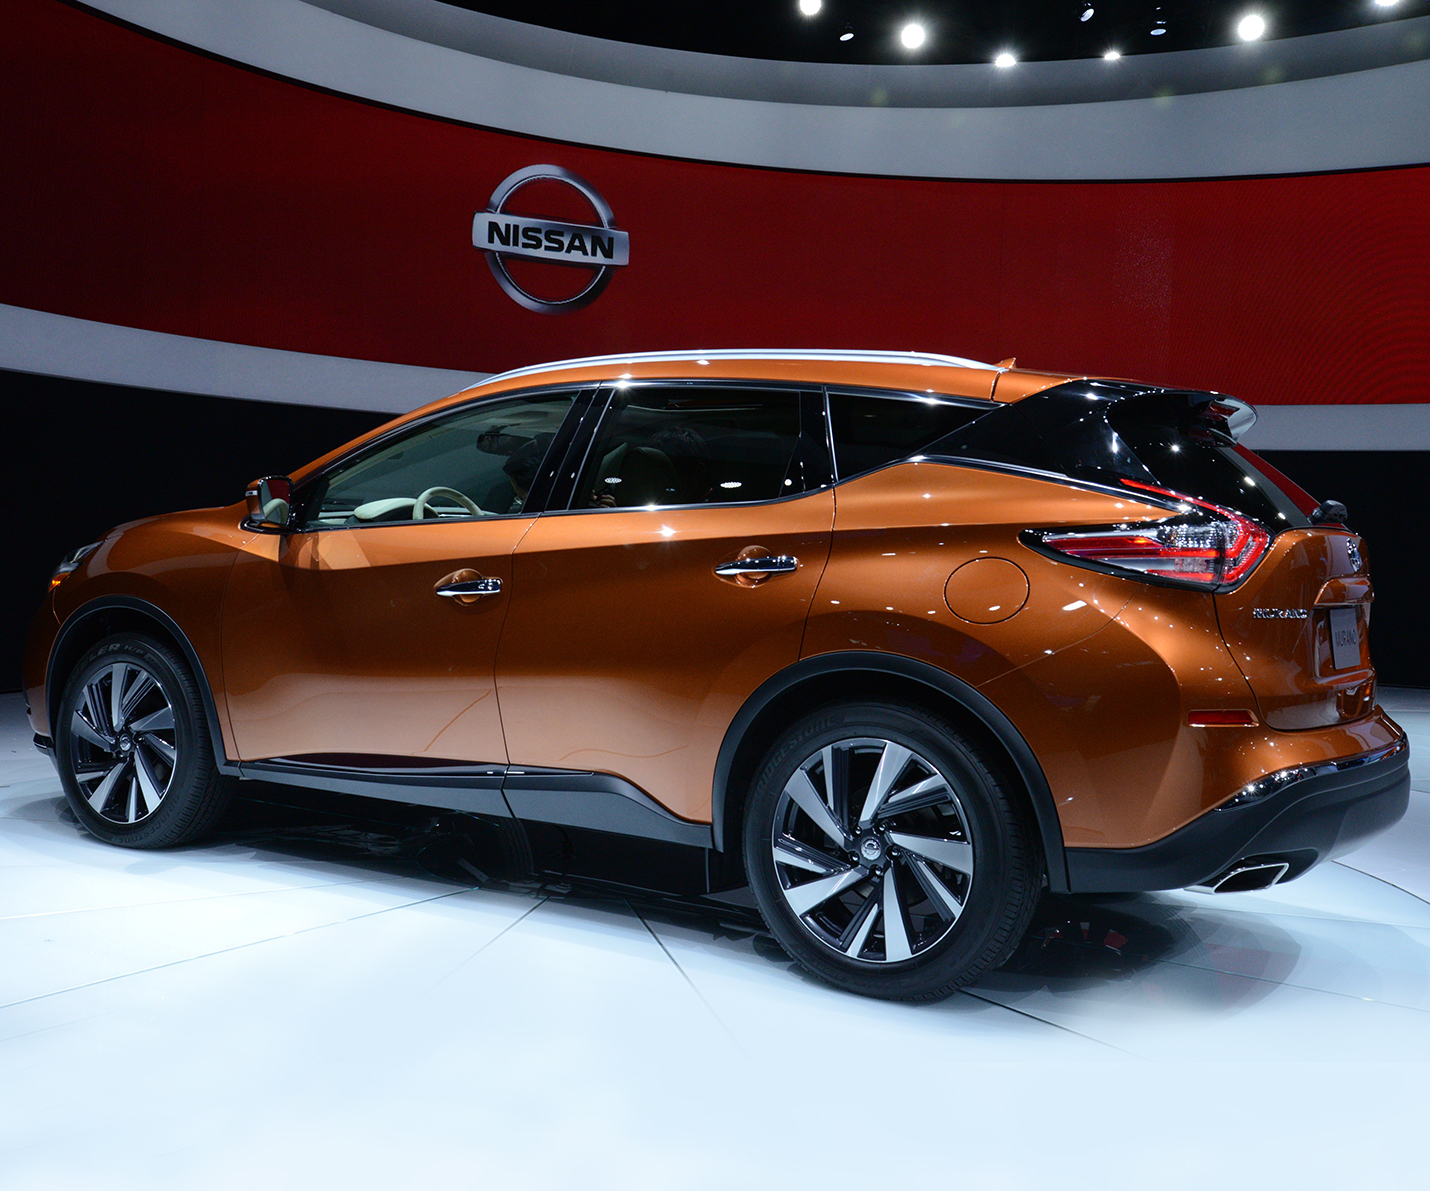 2018 Nissan murano release date